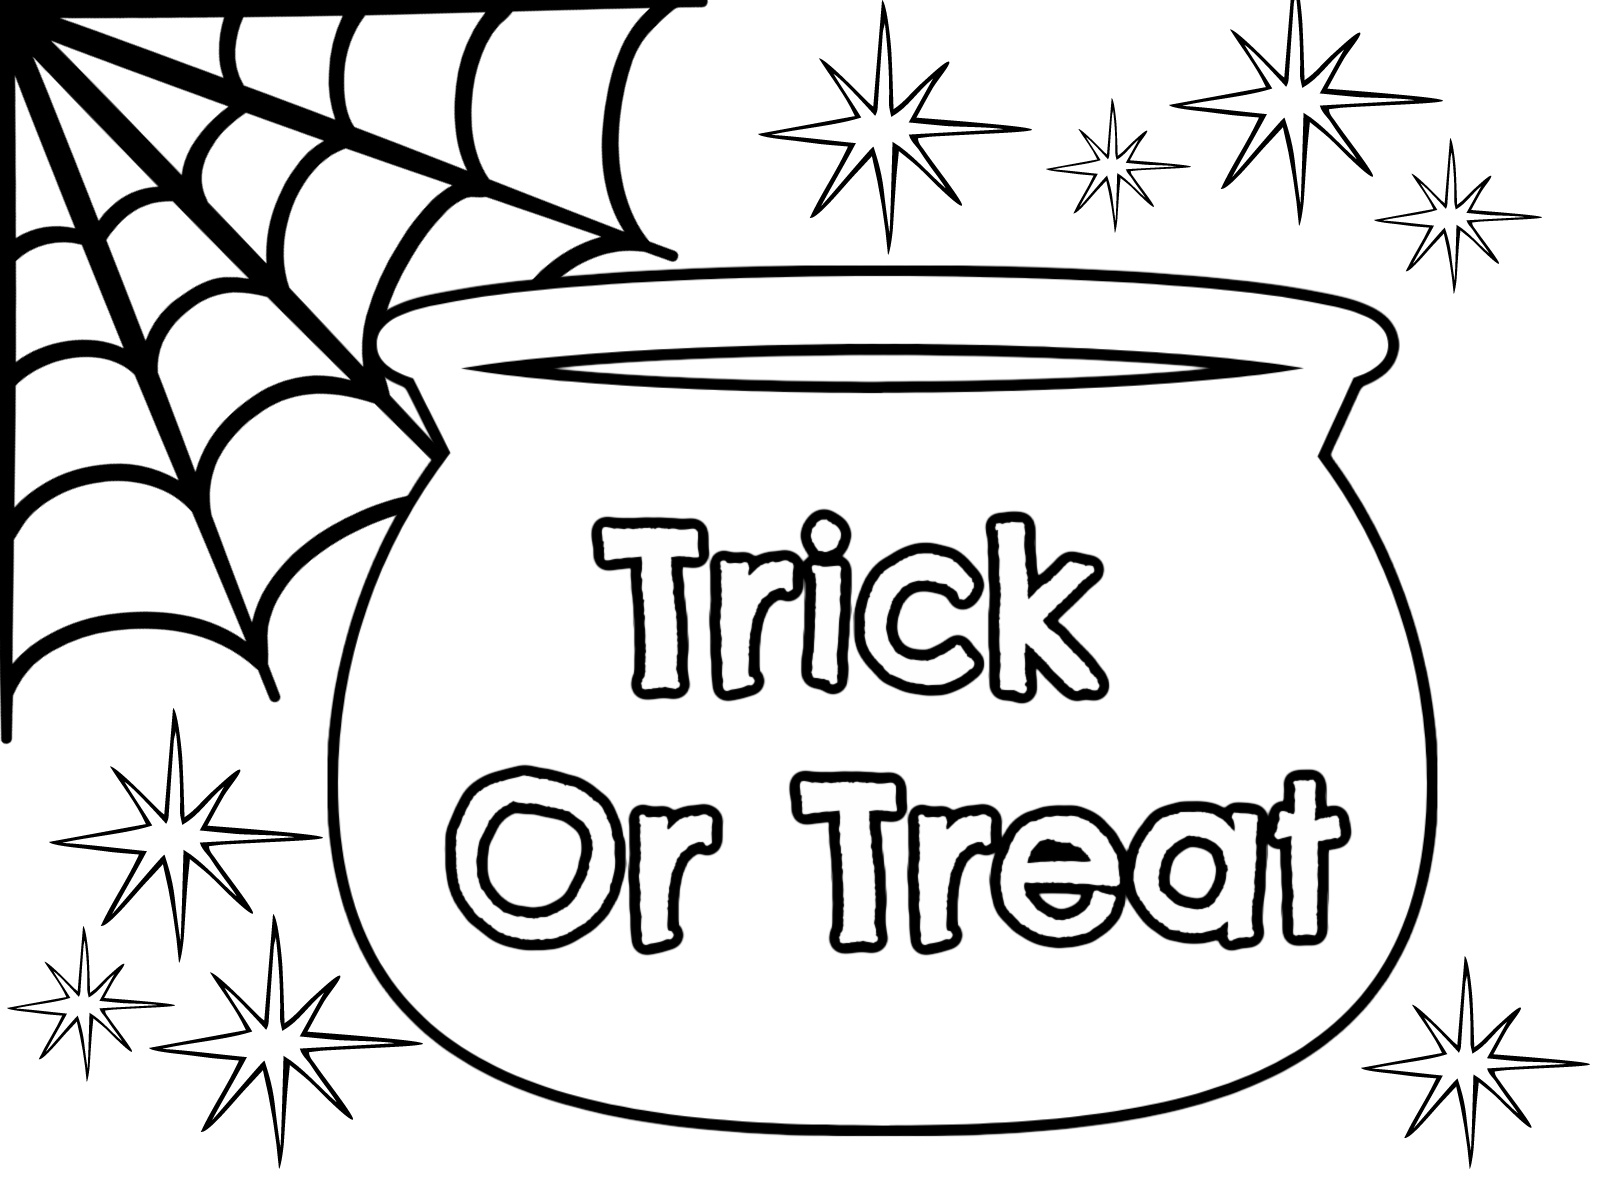 Kids halloween coloring pages. Free printable full size halloween coloring pages. Cute coloring pages Halloween. Free Halloween coloring sheets. Free Halloween coloring sheets. Halloween coloring pages for toddlers. #halloween #coloring #coloringpages #printables #familyfun